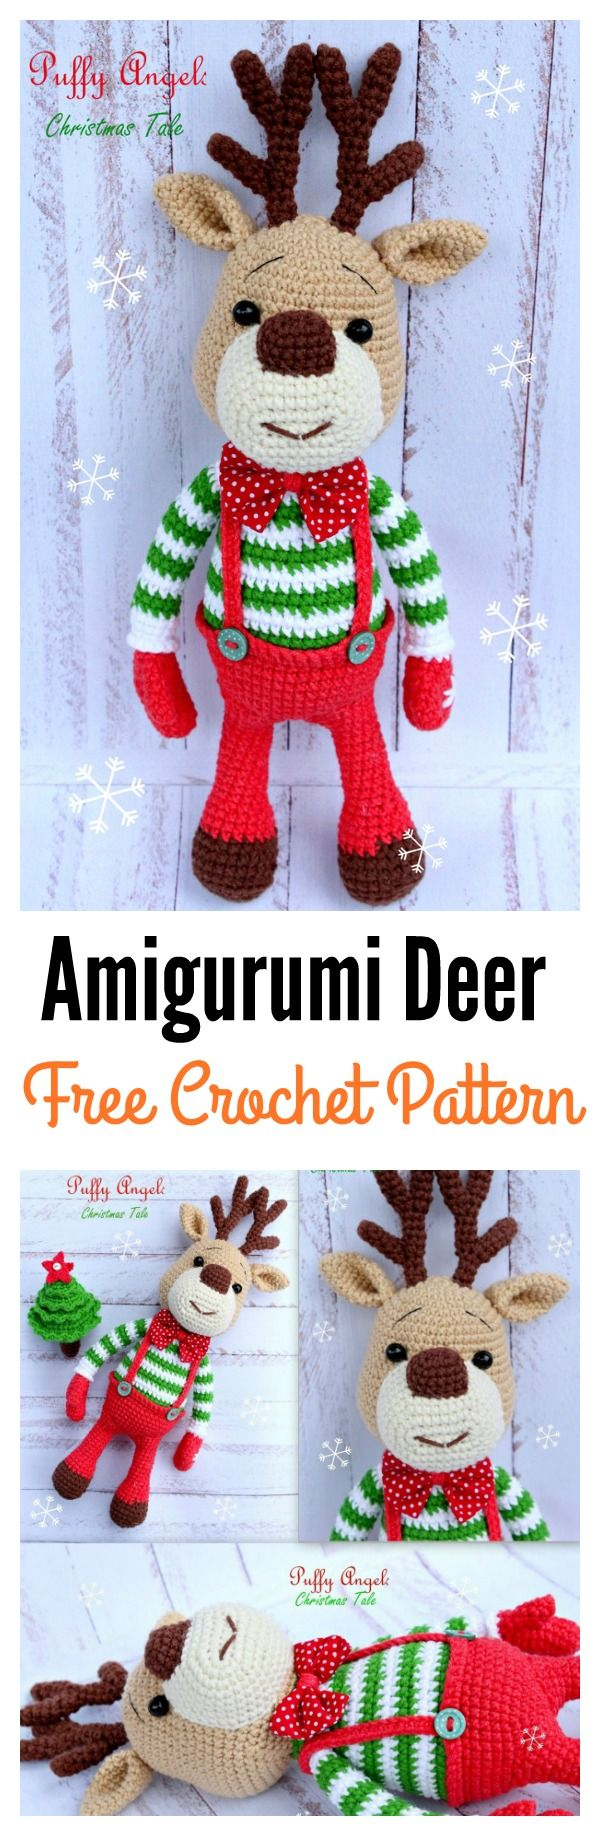 20 Crochet Reindeer Patterns---Amigurumi Deer Marley Free Crochet Pattern